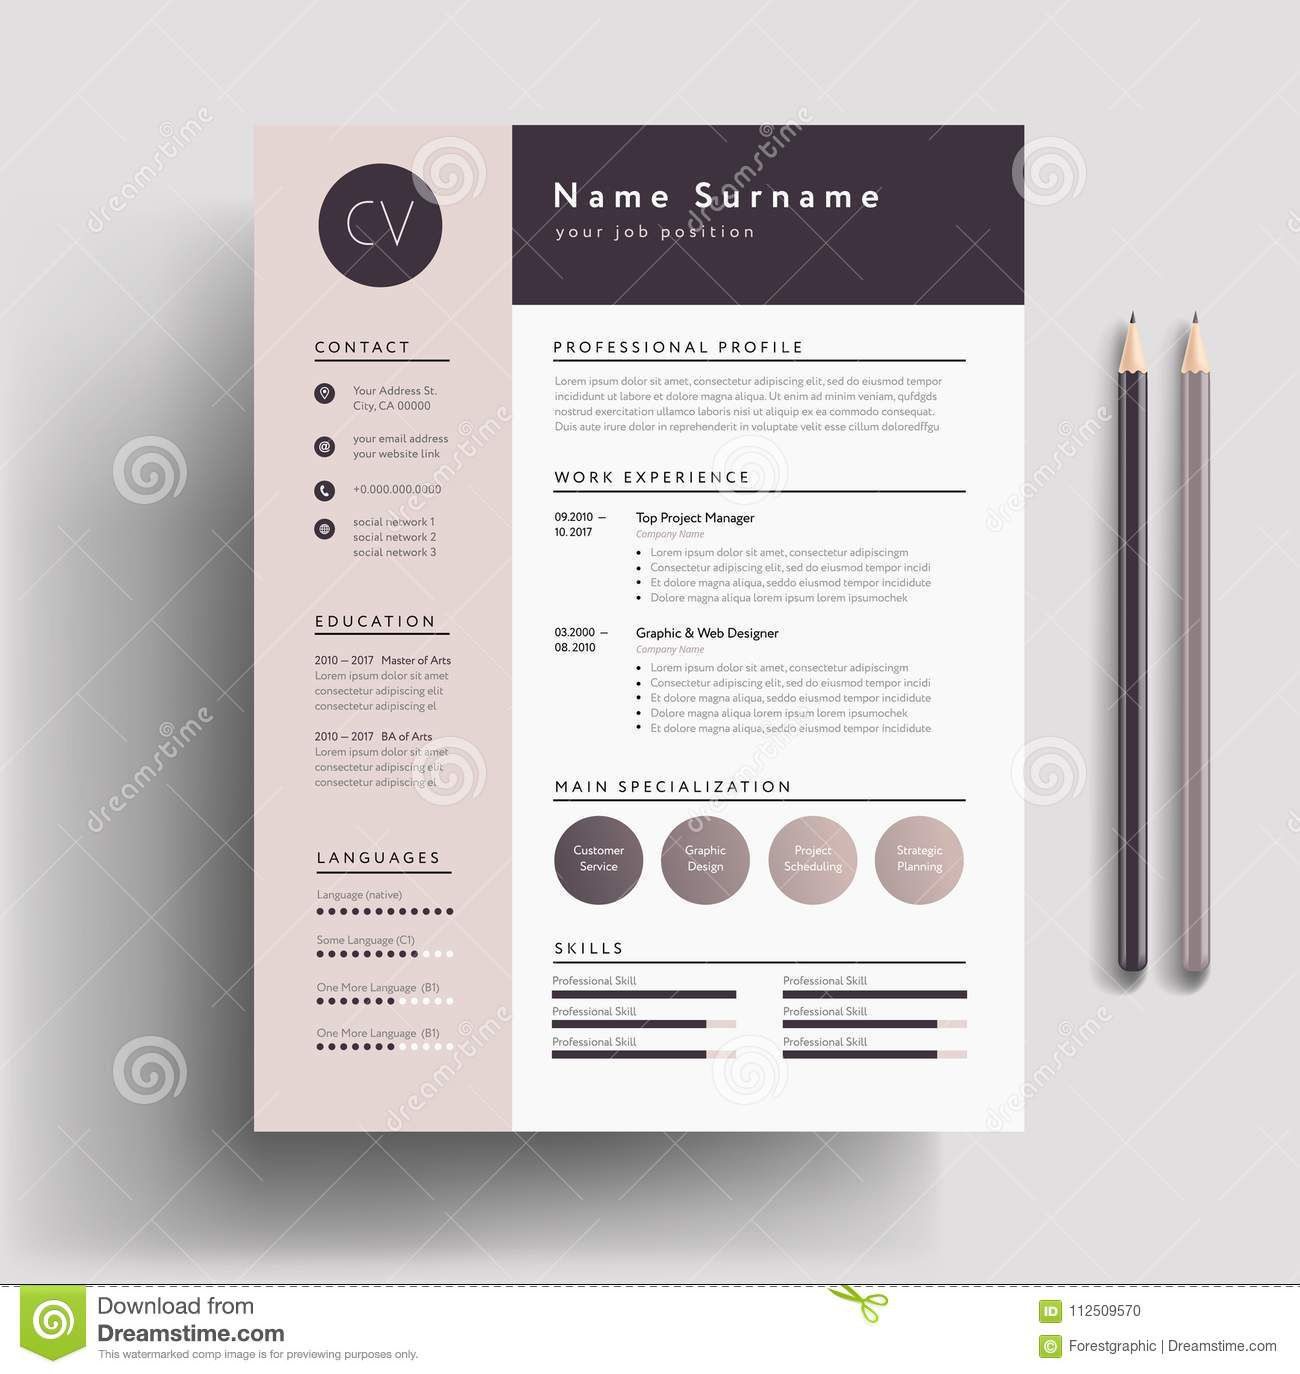 001 Awful Free Stylish Resume Template Concept  Templates Word DownloadFull